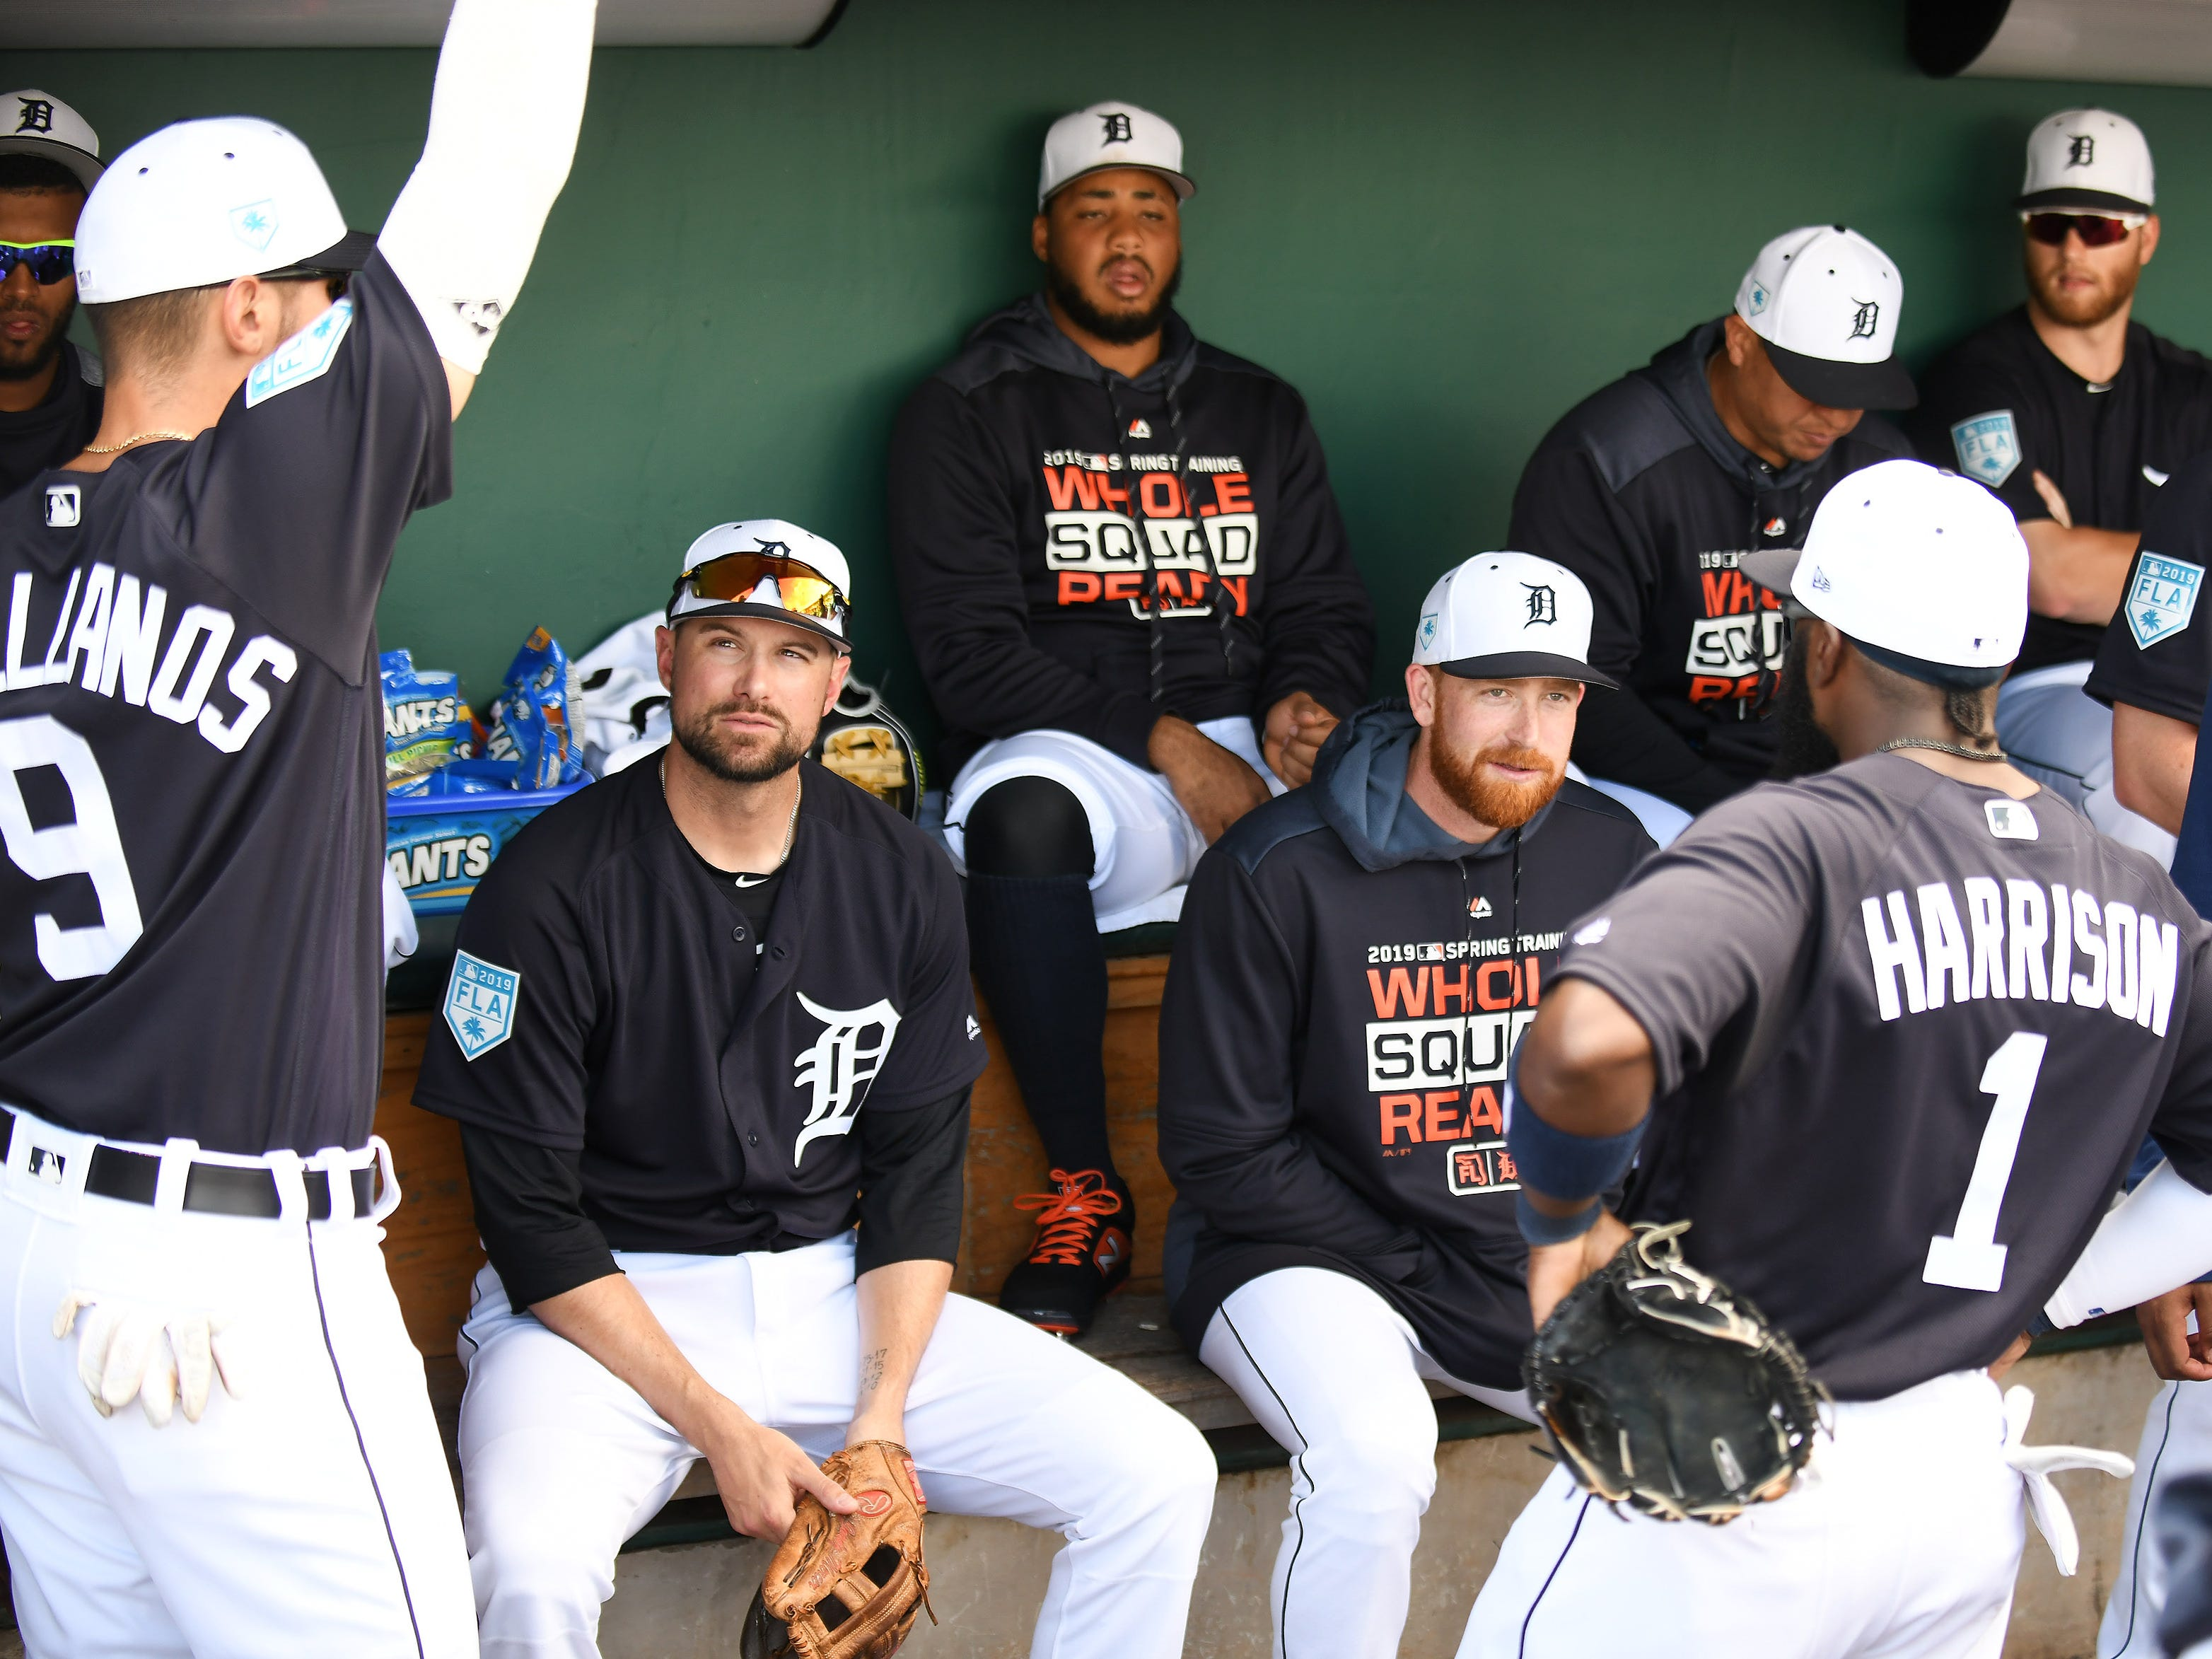 Tigers' Josh Harrison (1) in the dugout with teammates including, from left, Nick Castellanos (9), Jordy Mercer, Dawel Lugo and Spencer Turnbull, before the game.